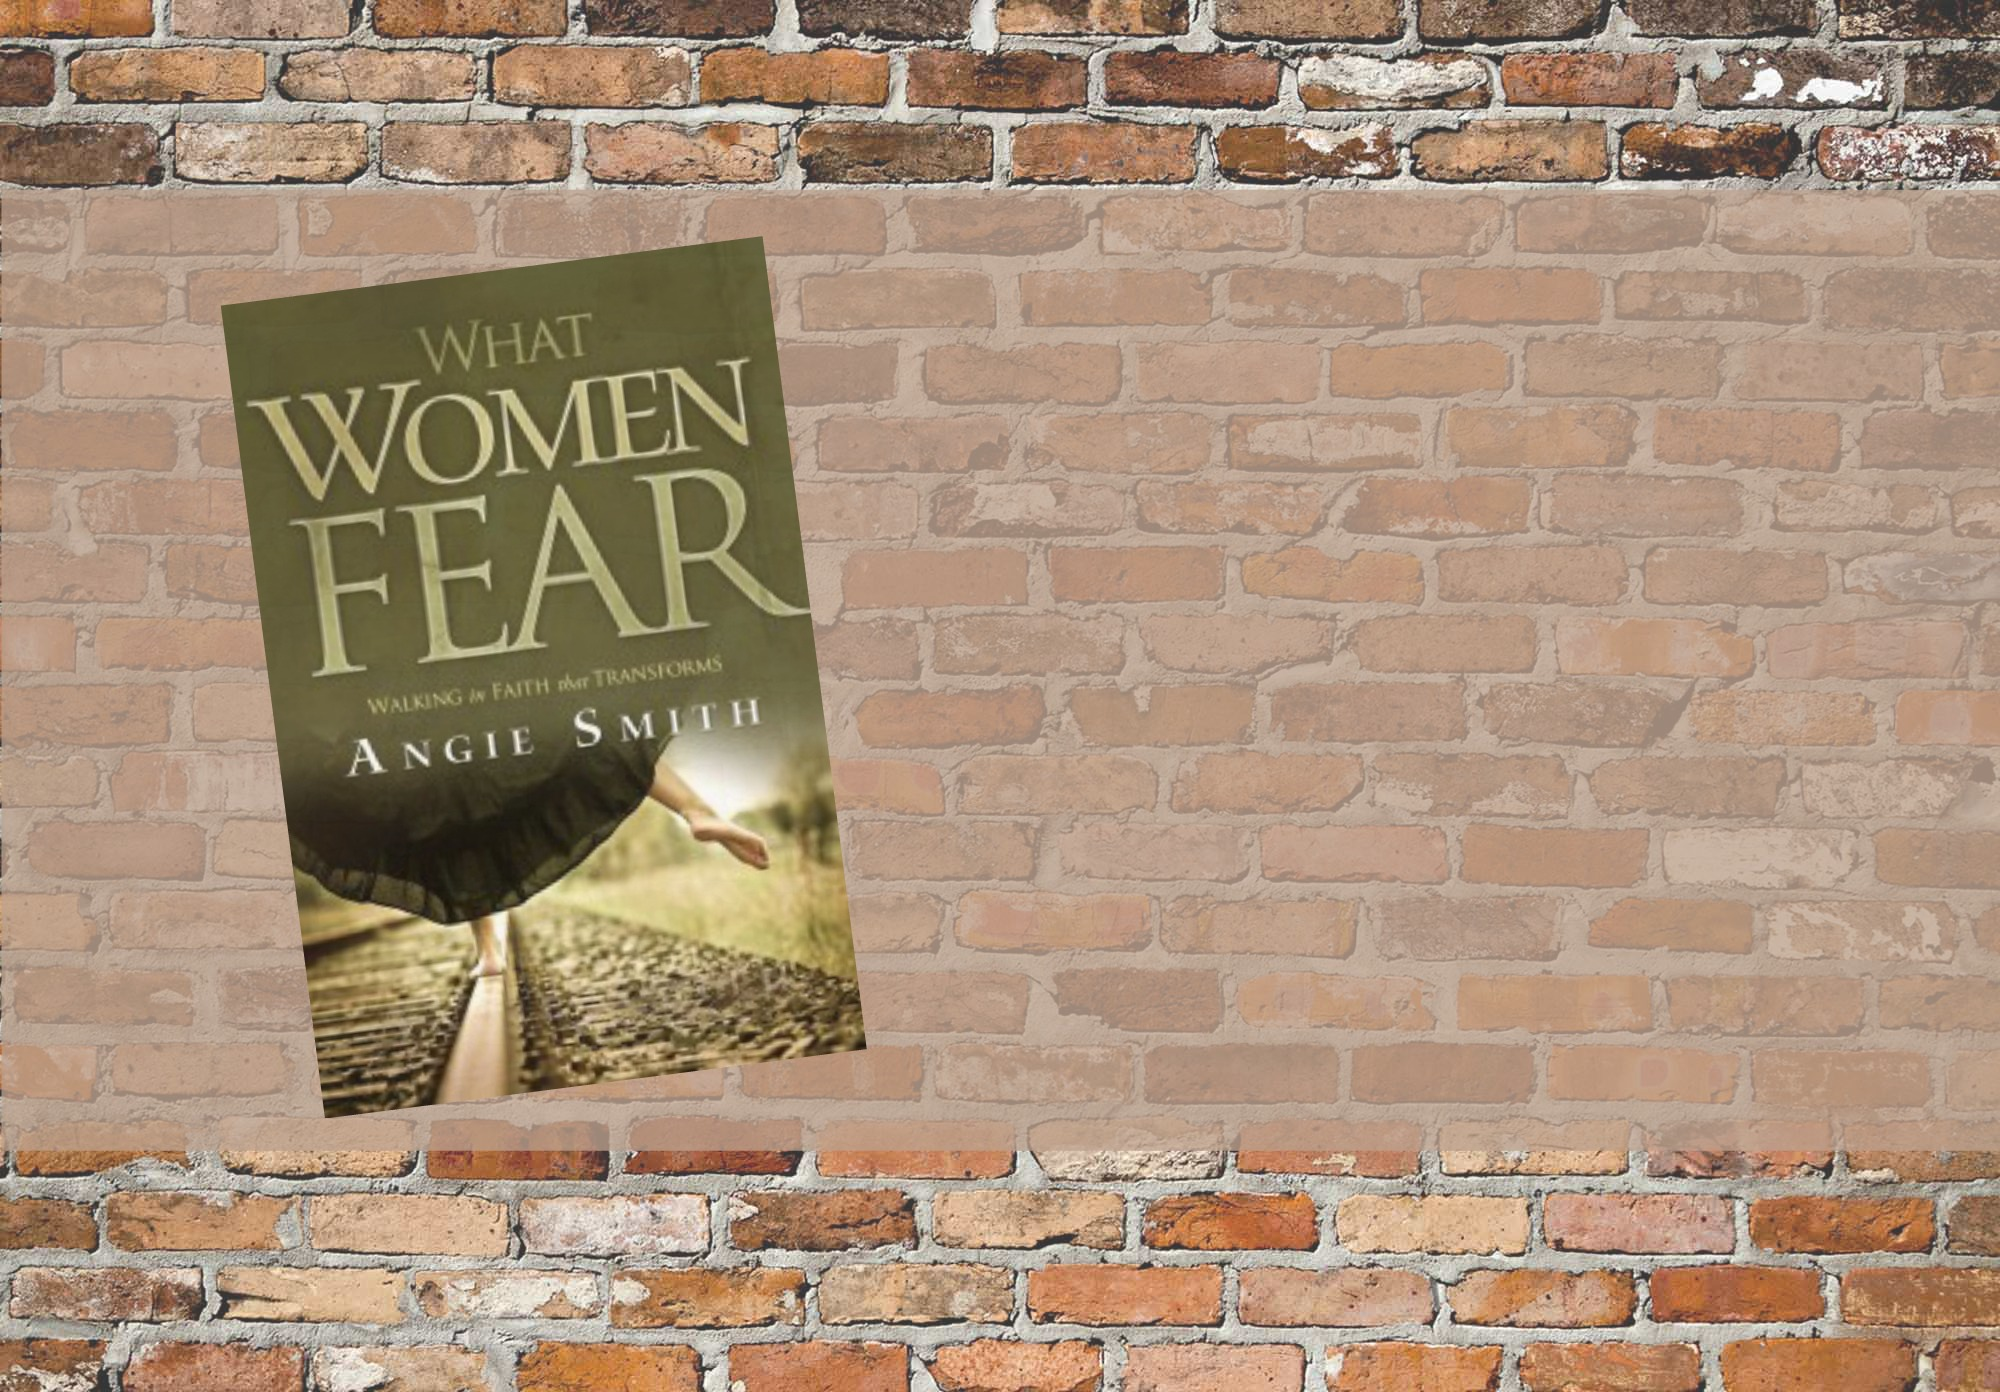 What Women Fear:  Week 6